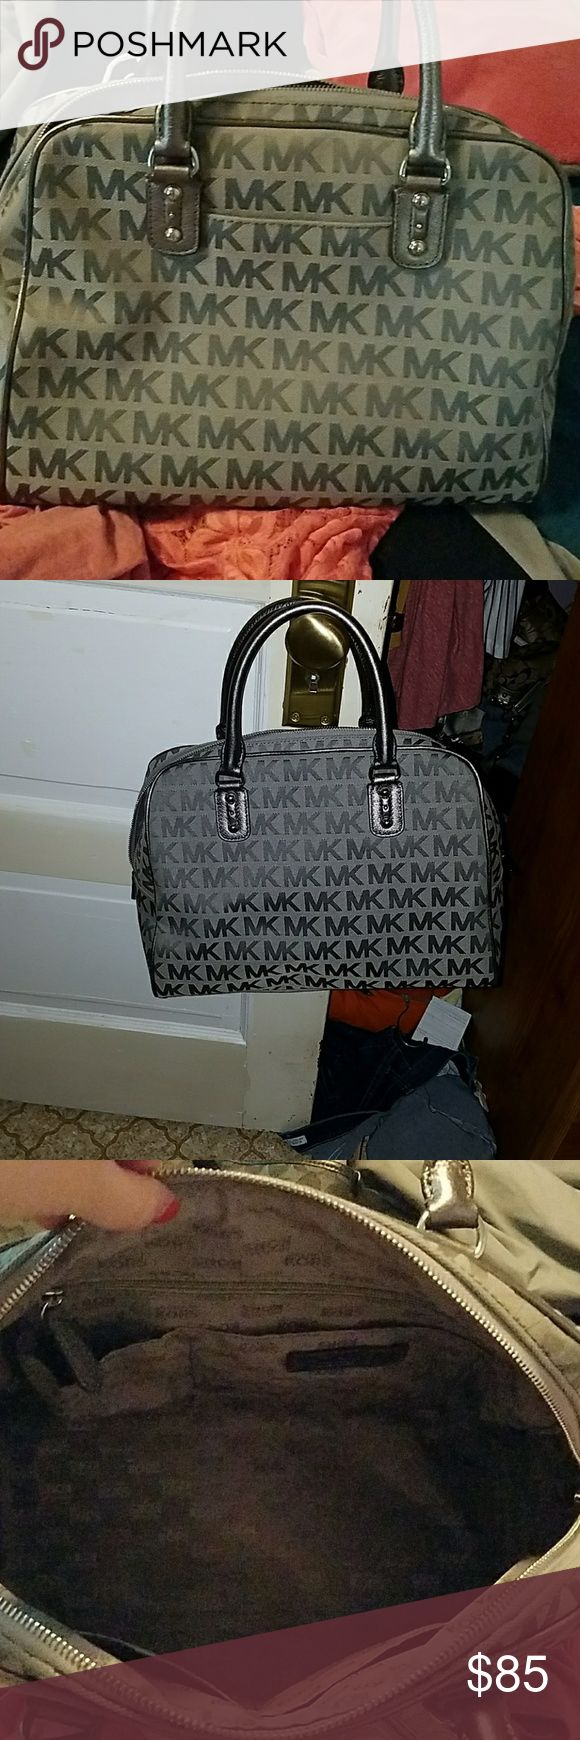 Michael Kors handbag Gray Michael Kors handbag. Missing strip to make into a crossbody. 4 pockets inside plus a zipper pocket inside. One slip pocket on the outside. Bought about 2 months ago, used once. Michael Kors Bags Totes